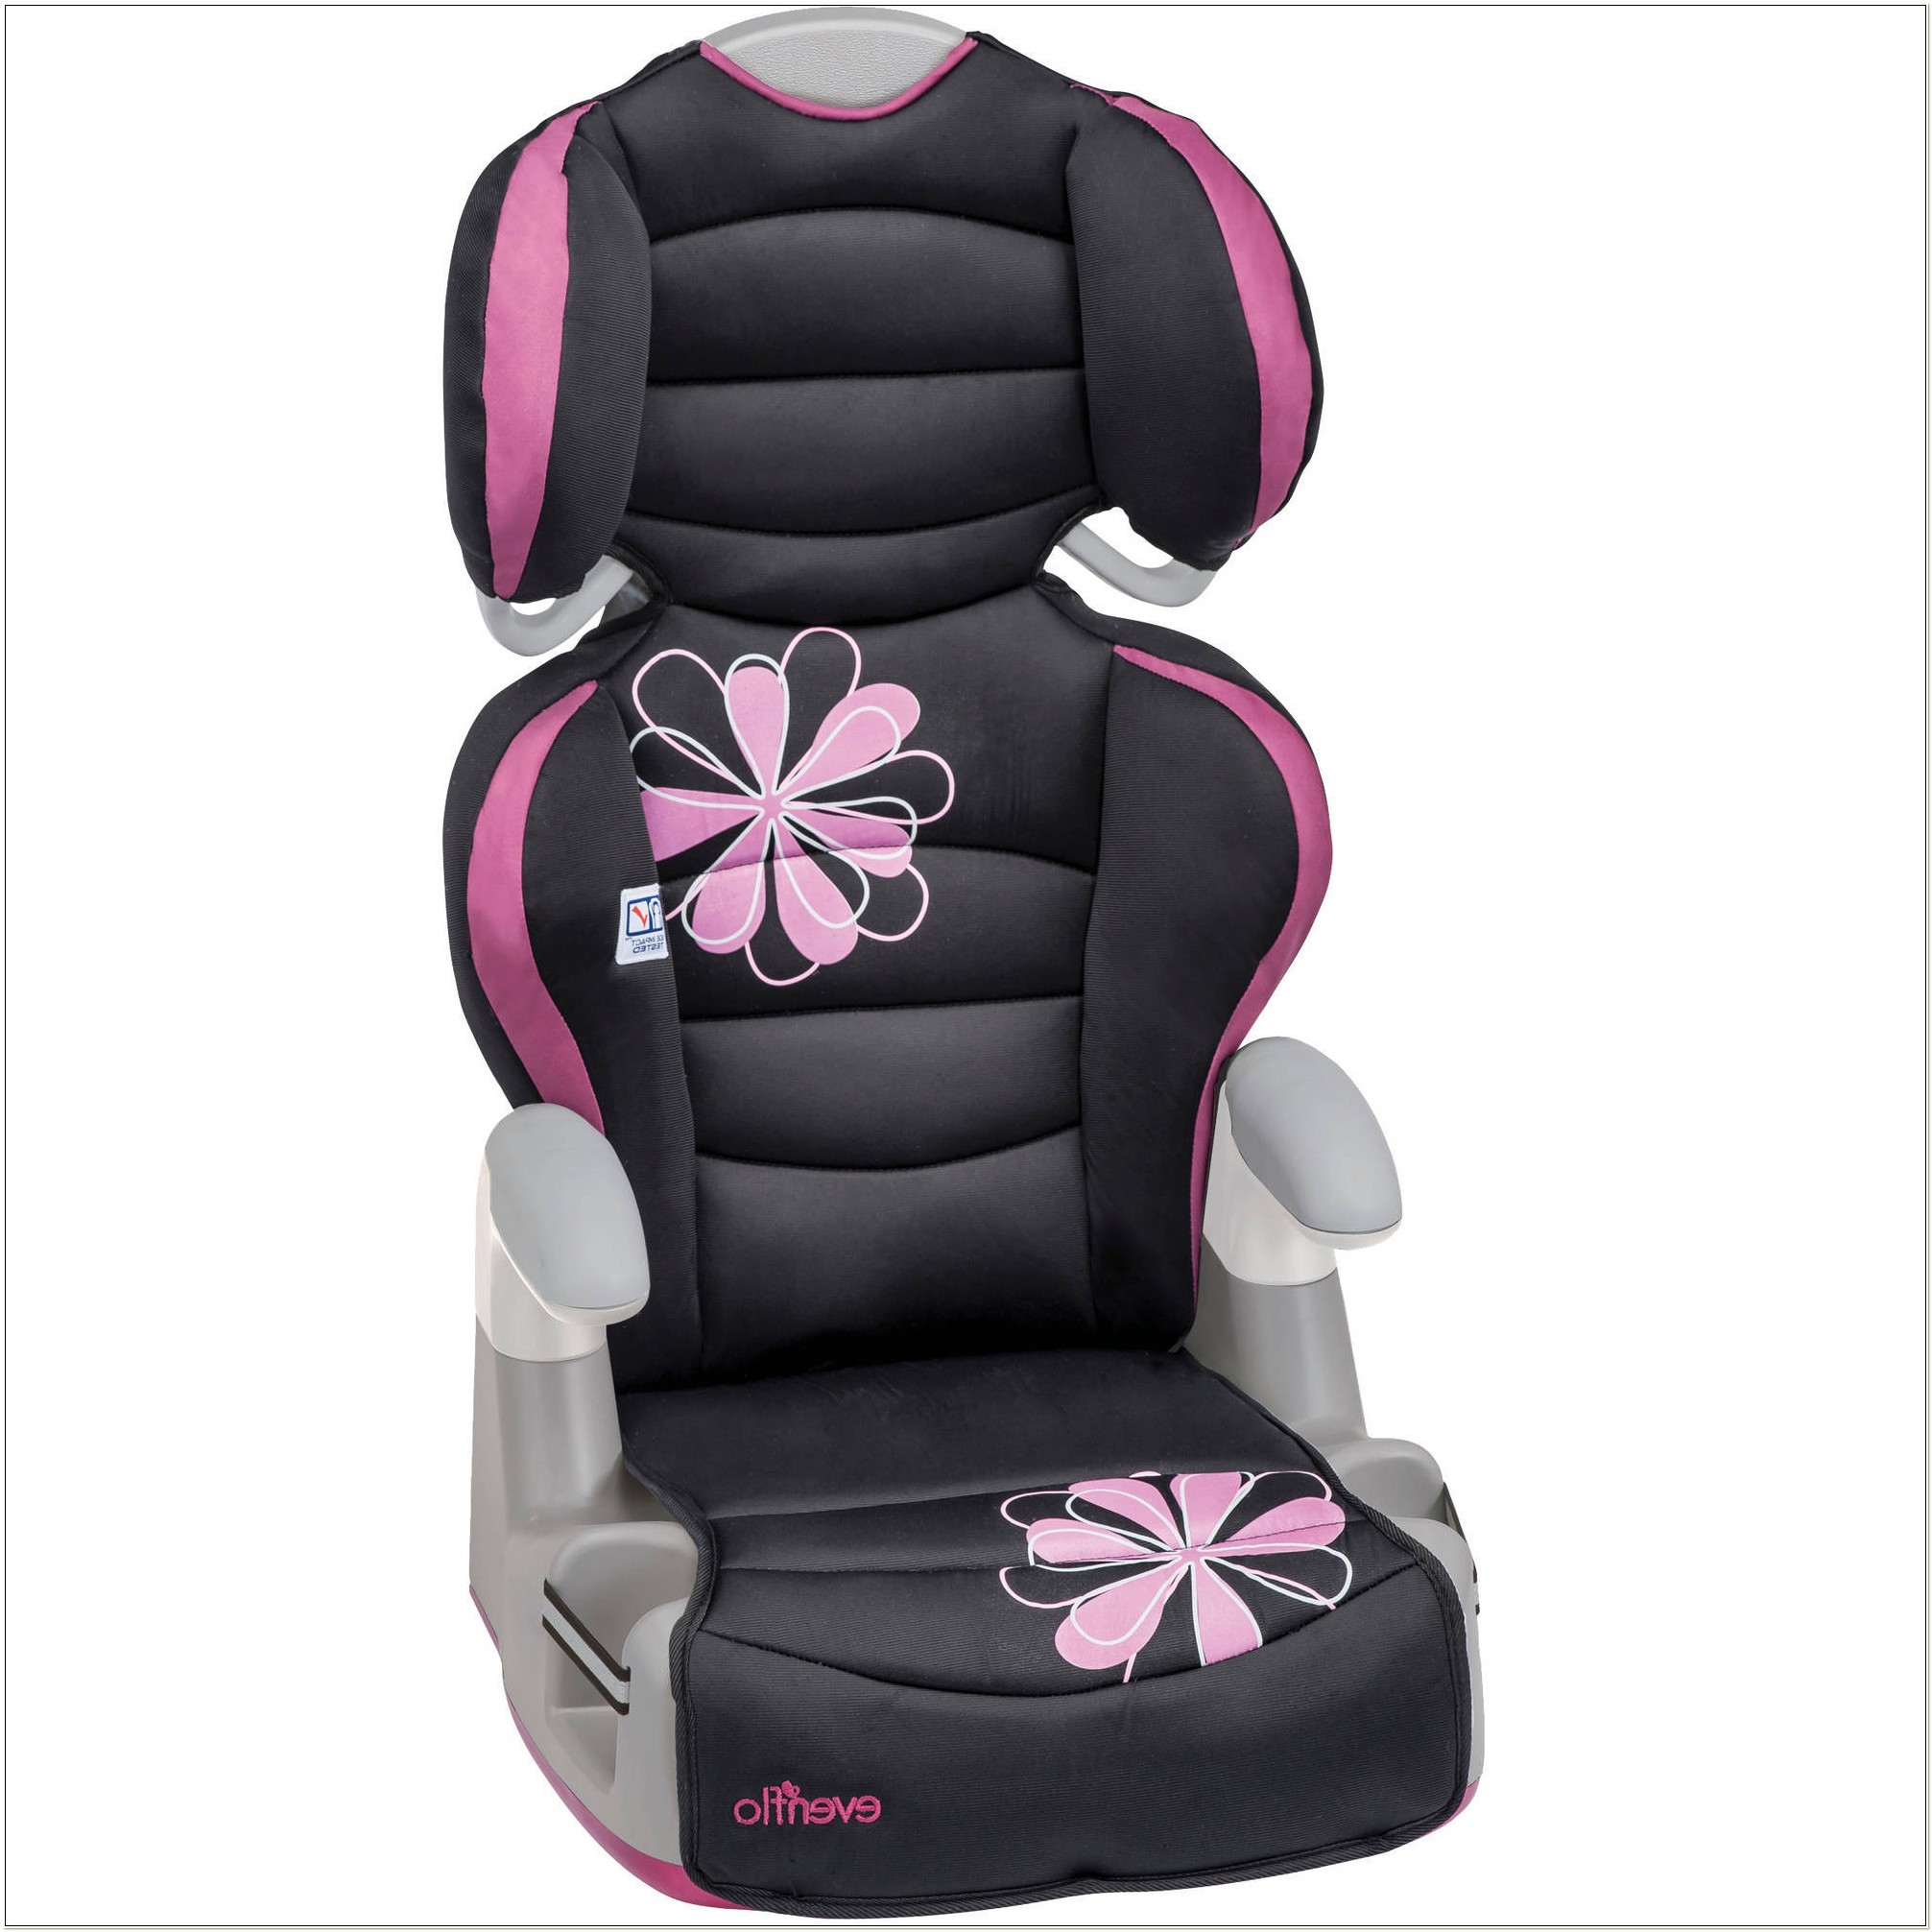 Booster Chairs For Toddlers Walmart